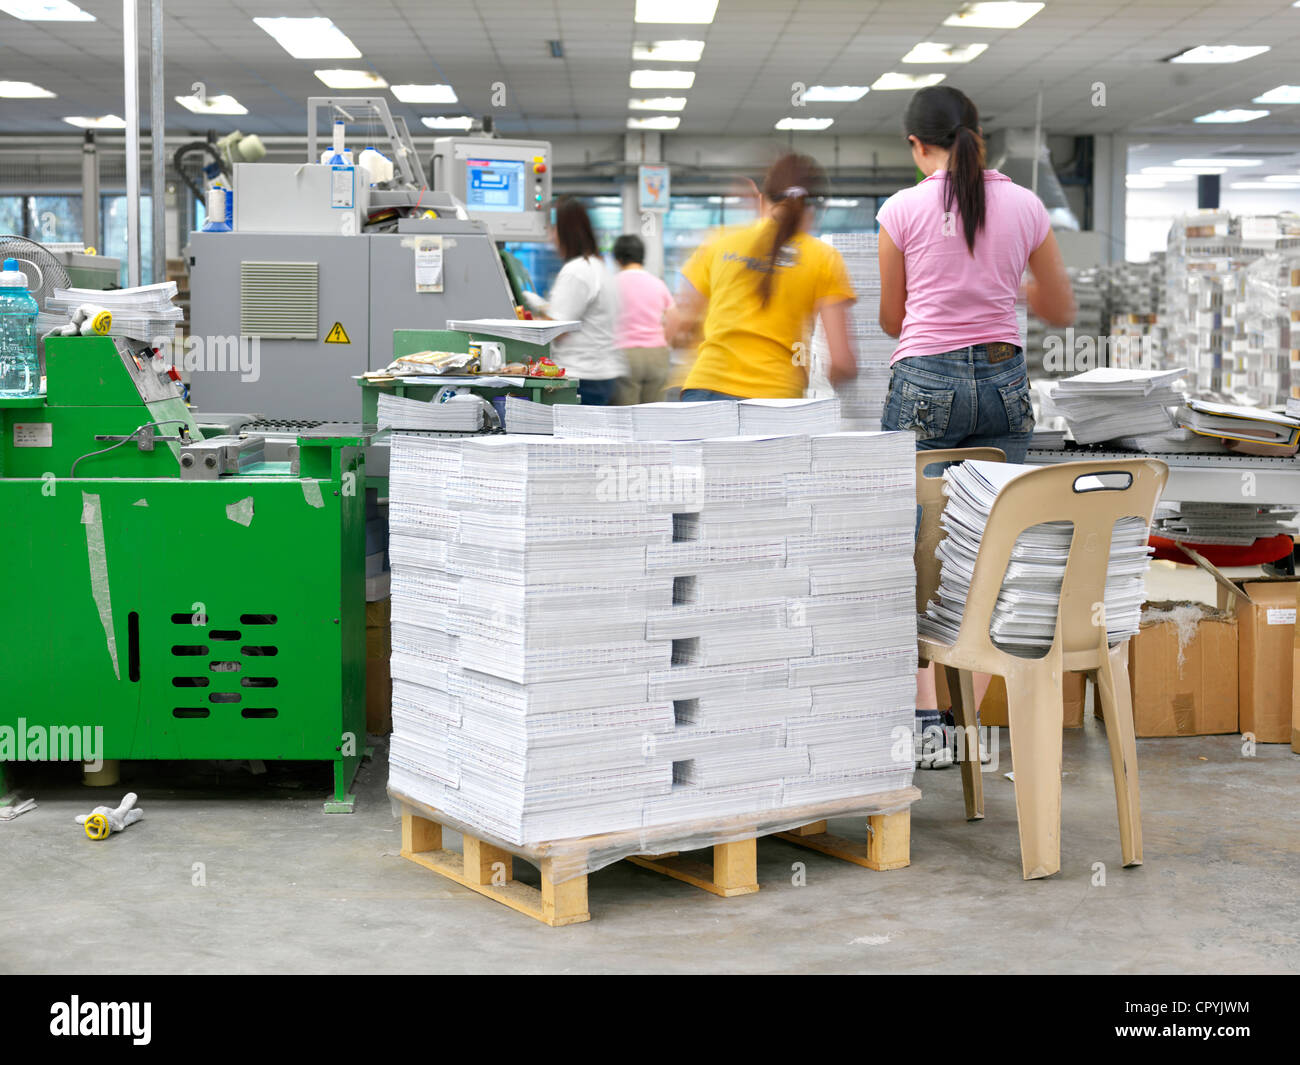 A full scale printing press in Singapore Stock Photo: 48550704 - Alamy